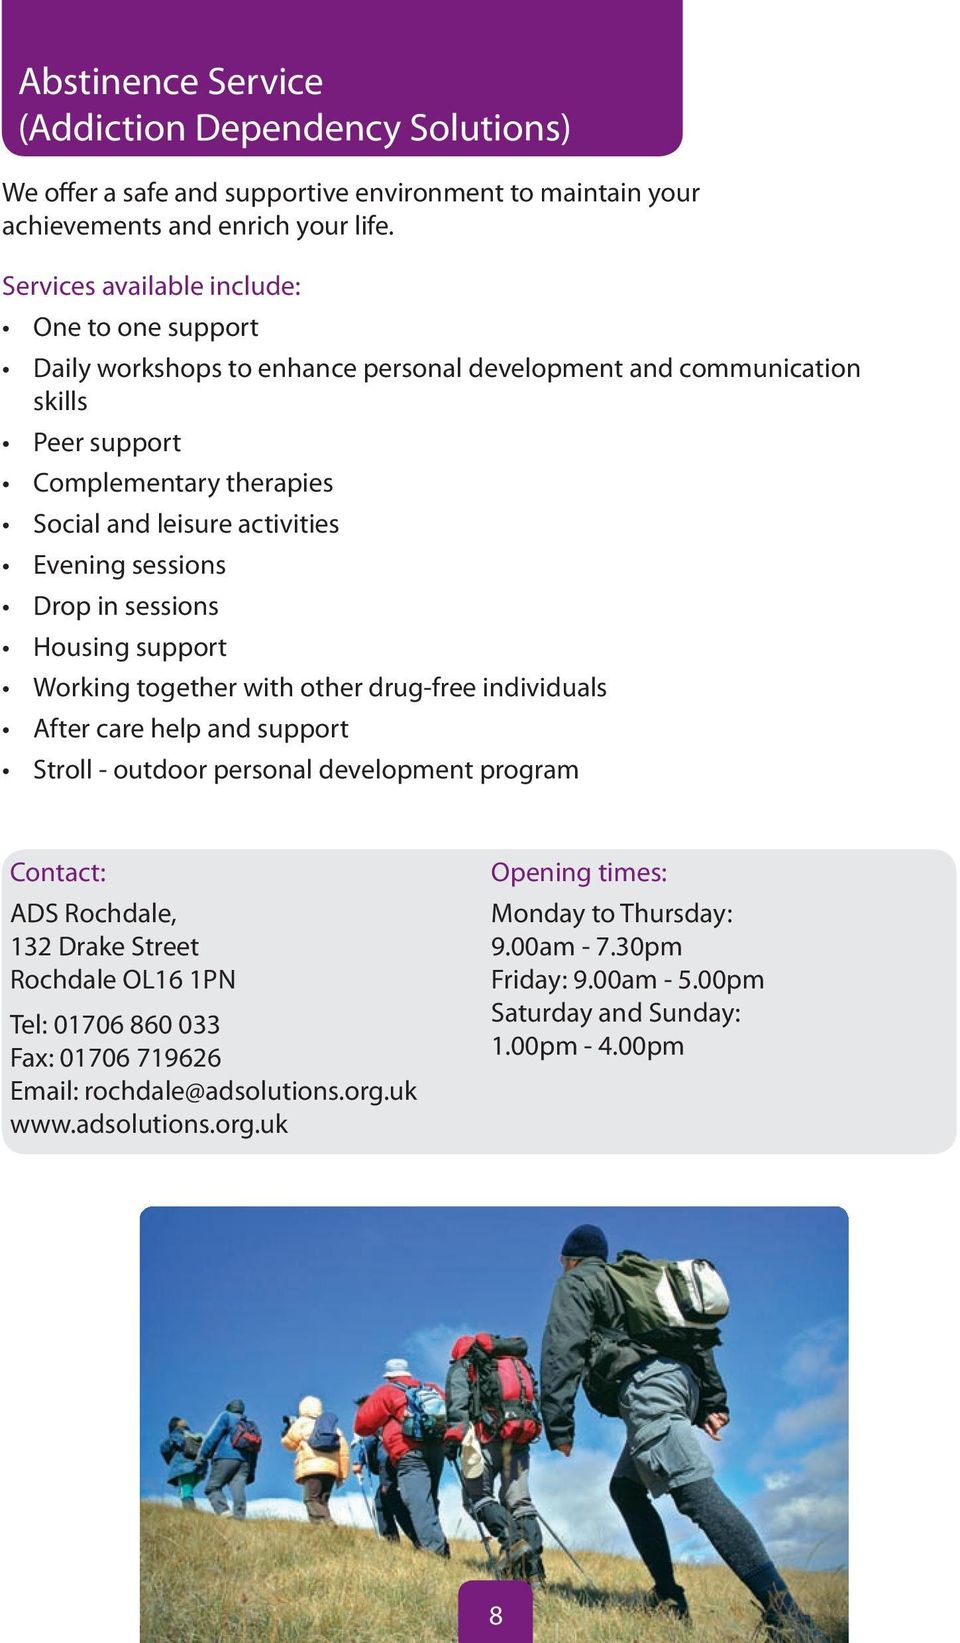 Evening sessions Drop in sessions Housing support Working together with other drug-free individuals After care help and support Stroll - outdoor personal development program Contact: ADS